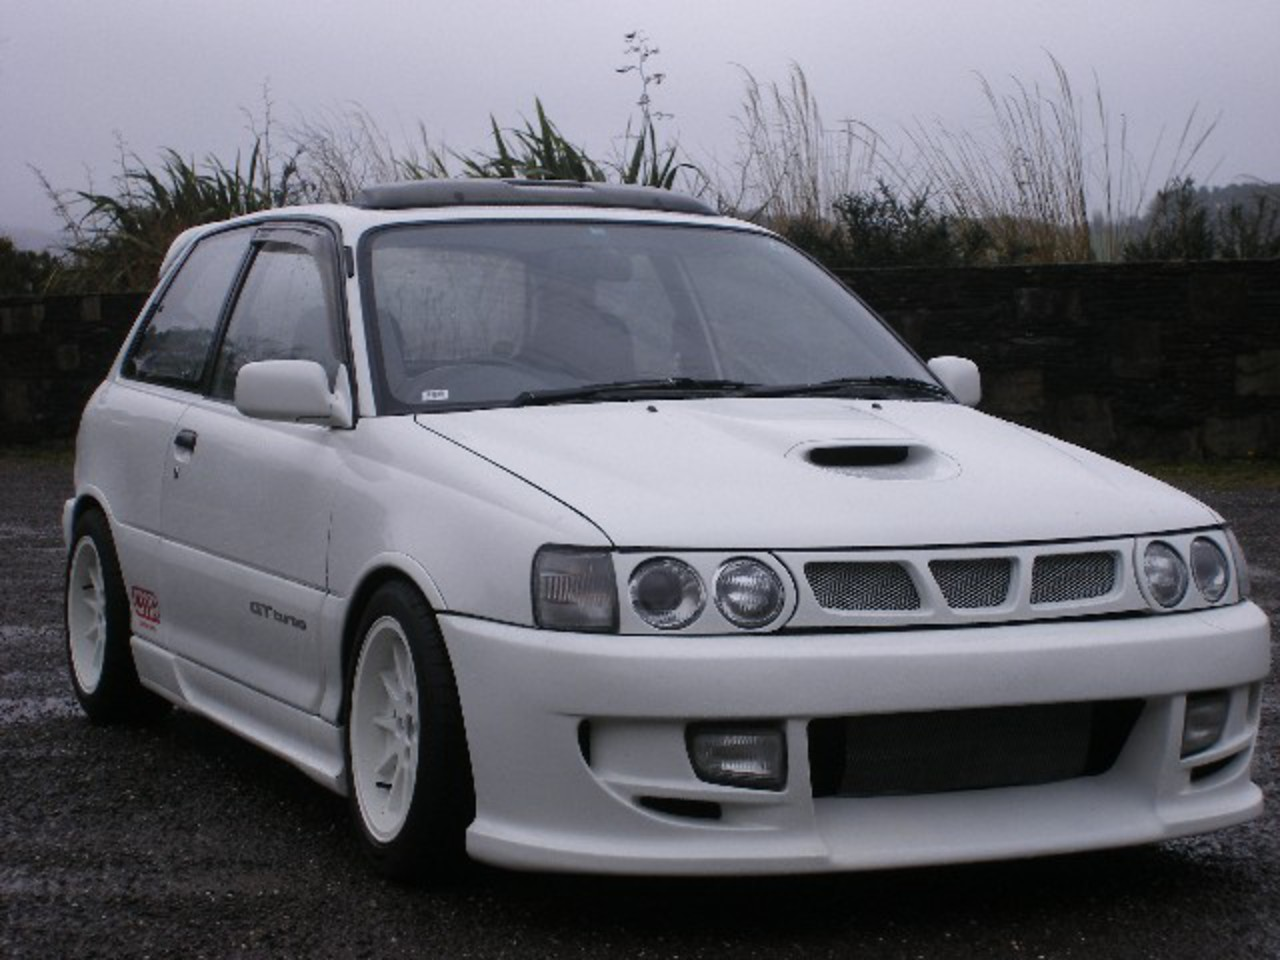 Toyota Starlet Gt Turbo Ep For Sale In Kilgarvan Co Kerry F on 1993 Chevrolet Blazer